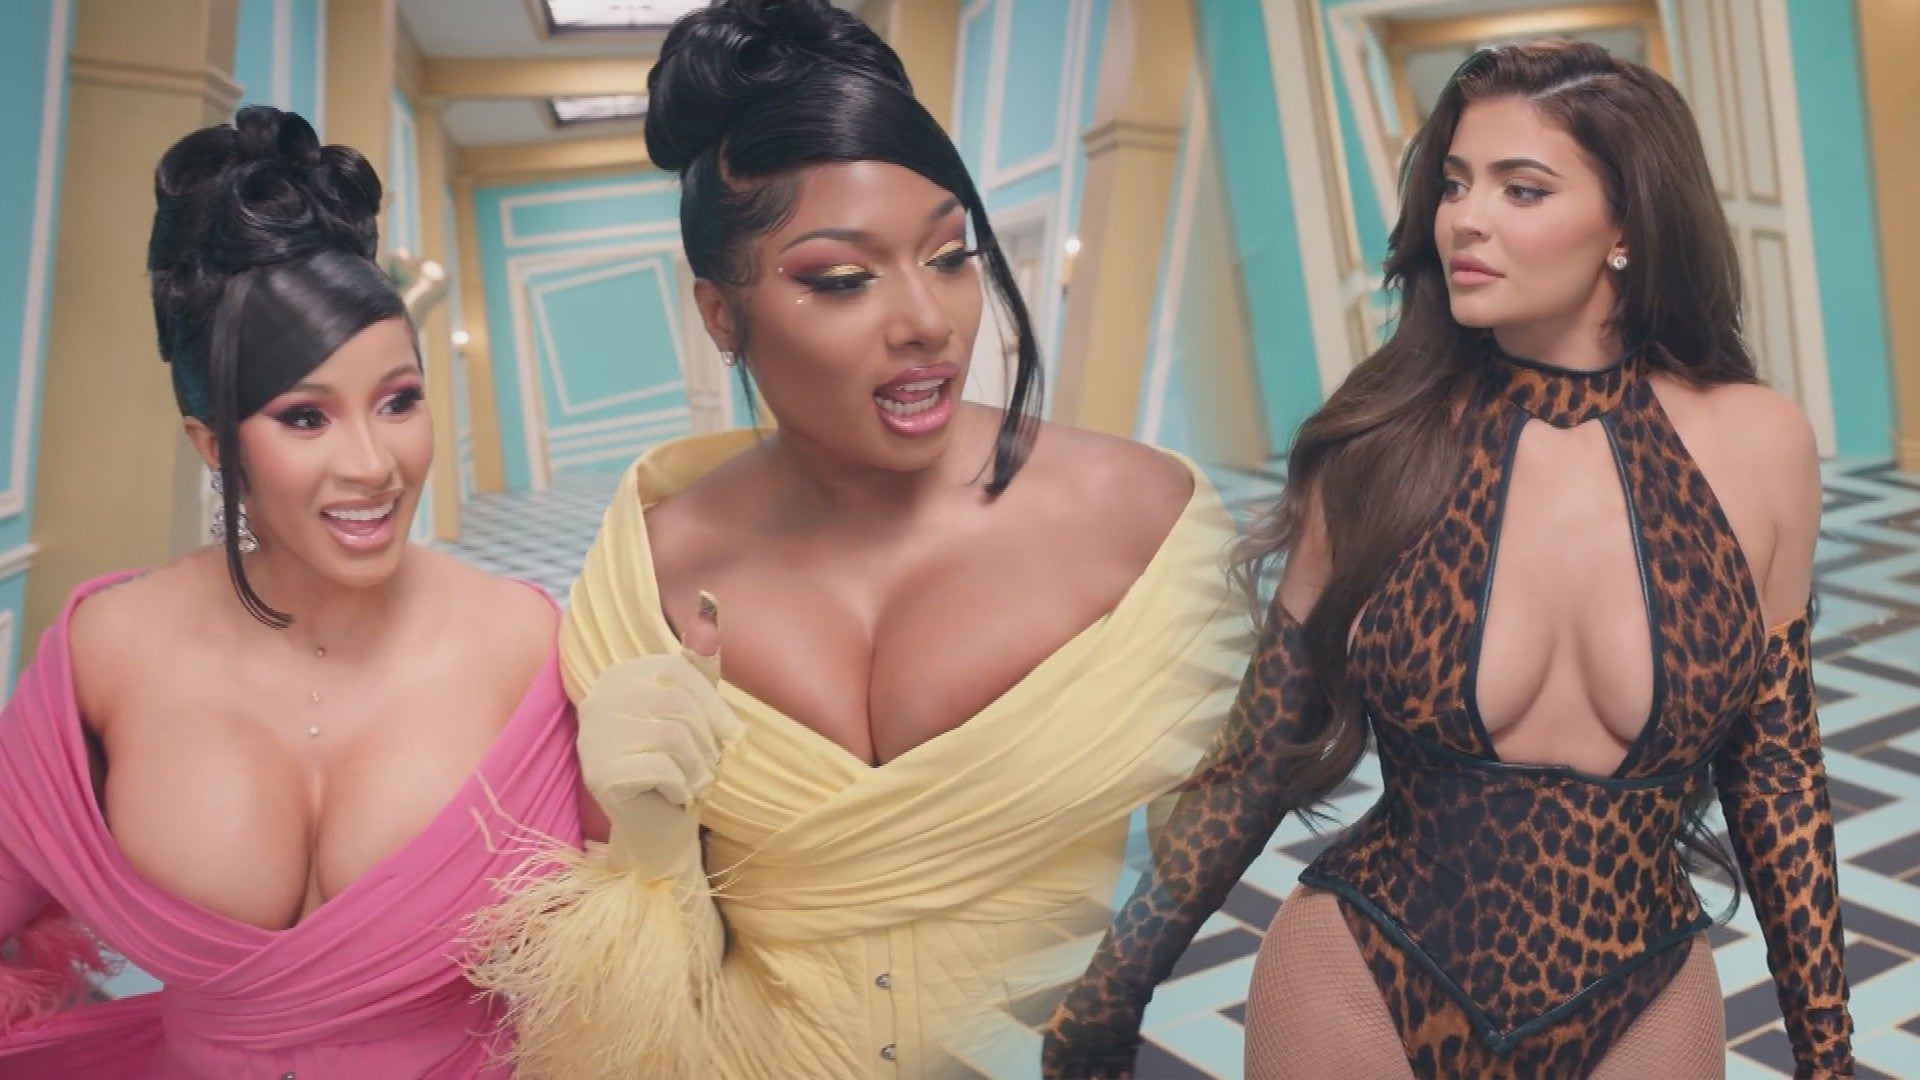 Cardi B And Megan Thee Stallion Drop Wap Video Kylie Jenner